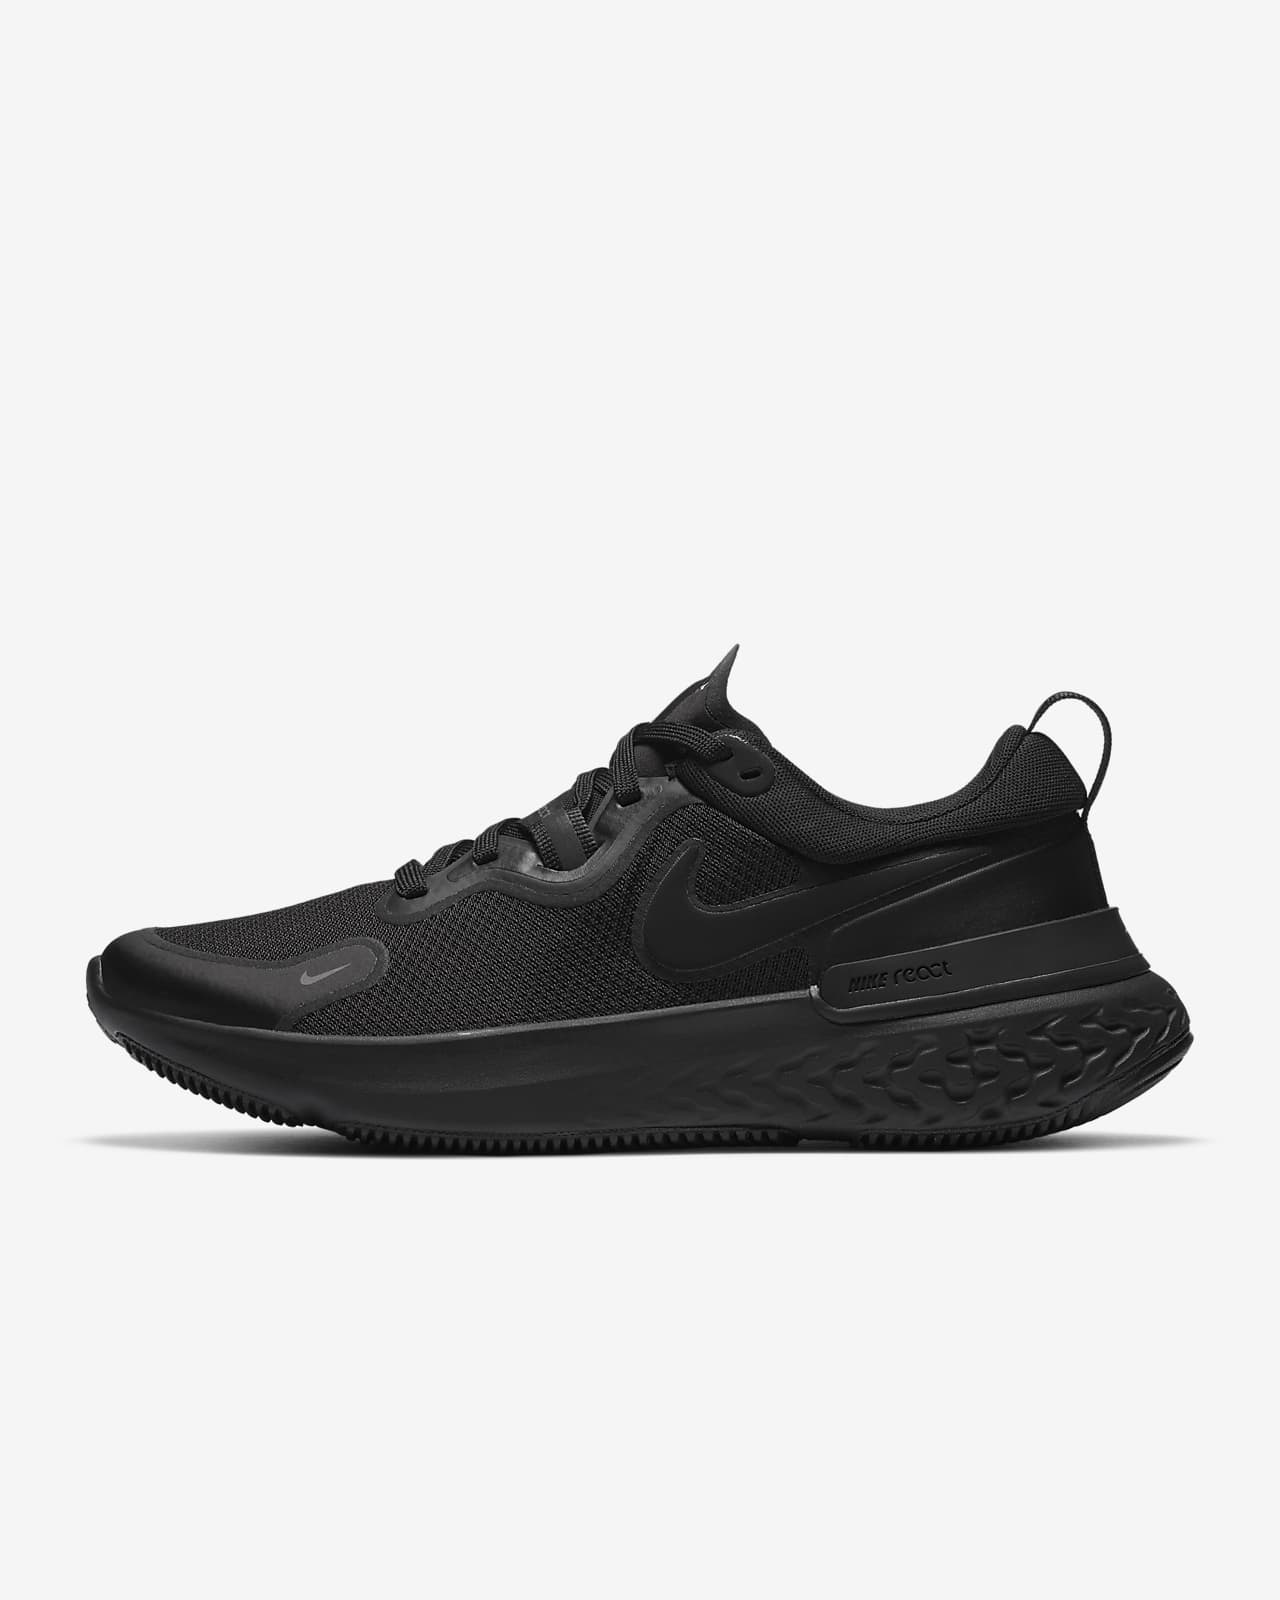 Nike React Miler Women's Running Shoe